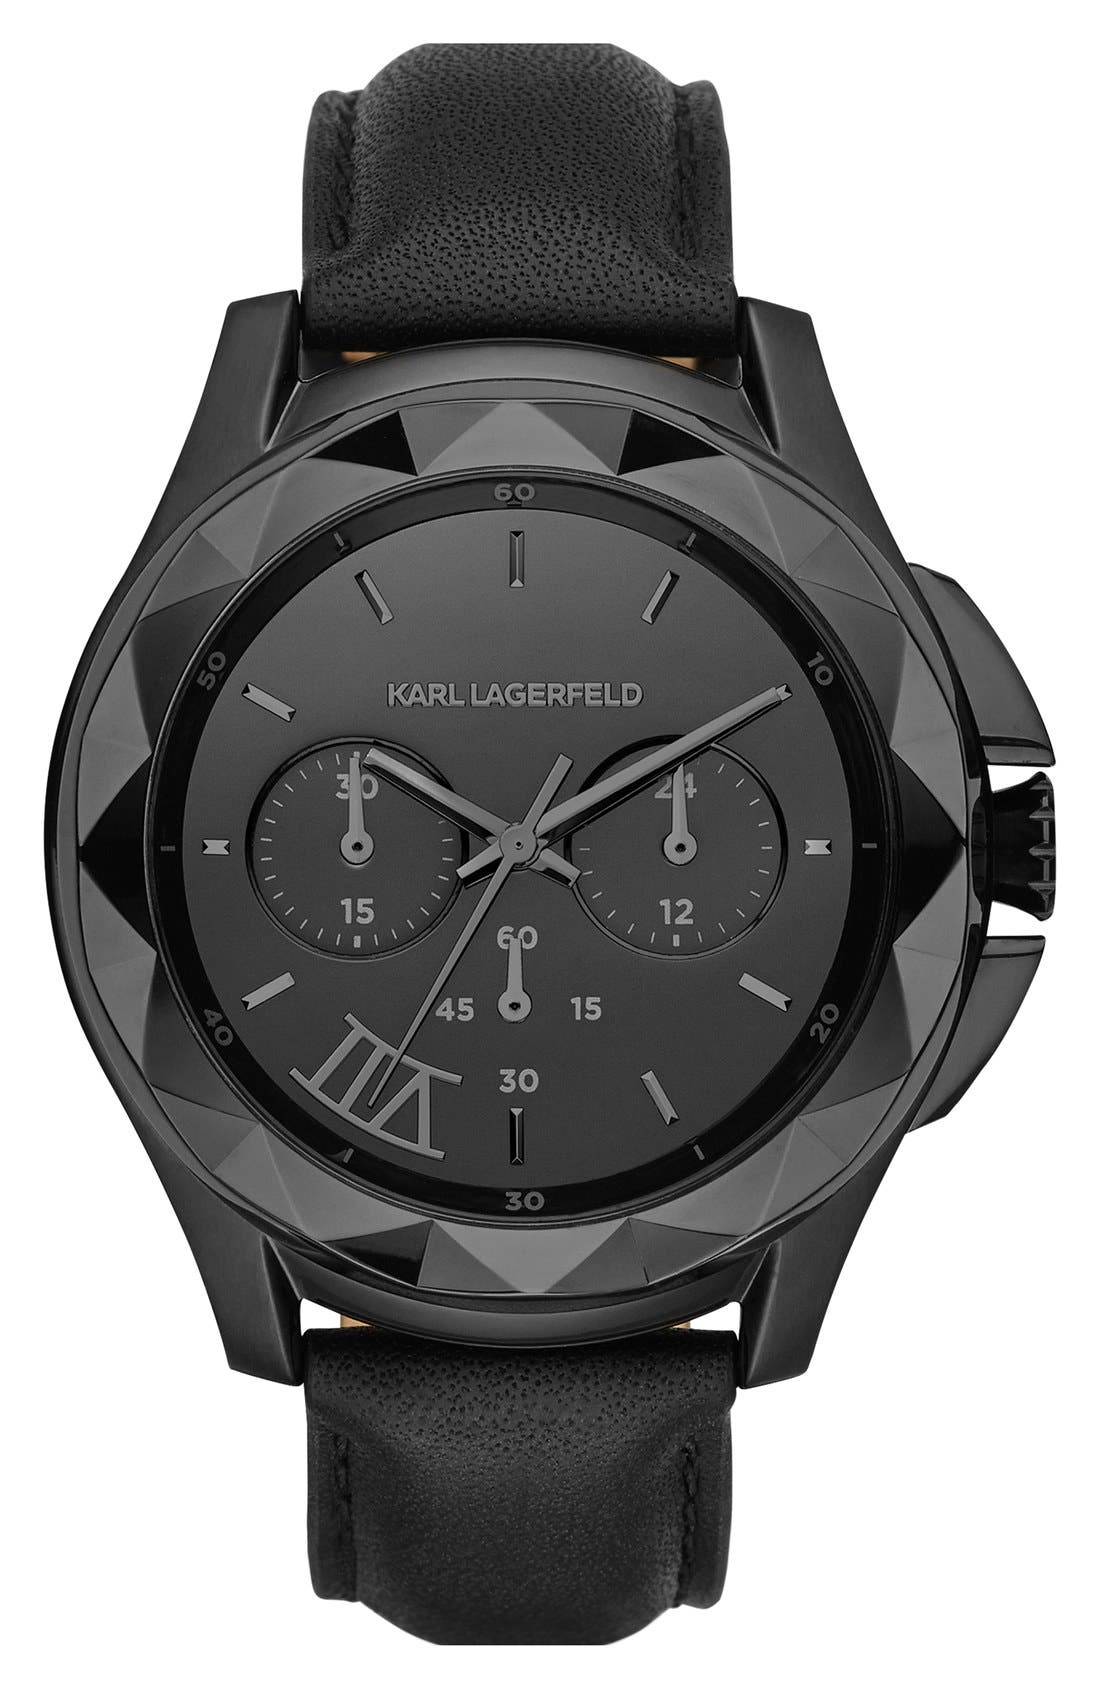 Main Image - KARL LAGERFELD 'Karl 7' Chronograph Leather Strap Watch, 44mm